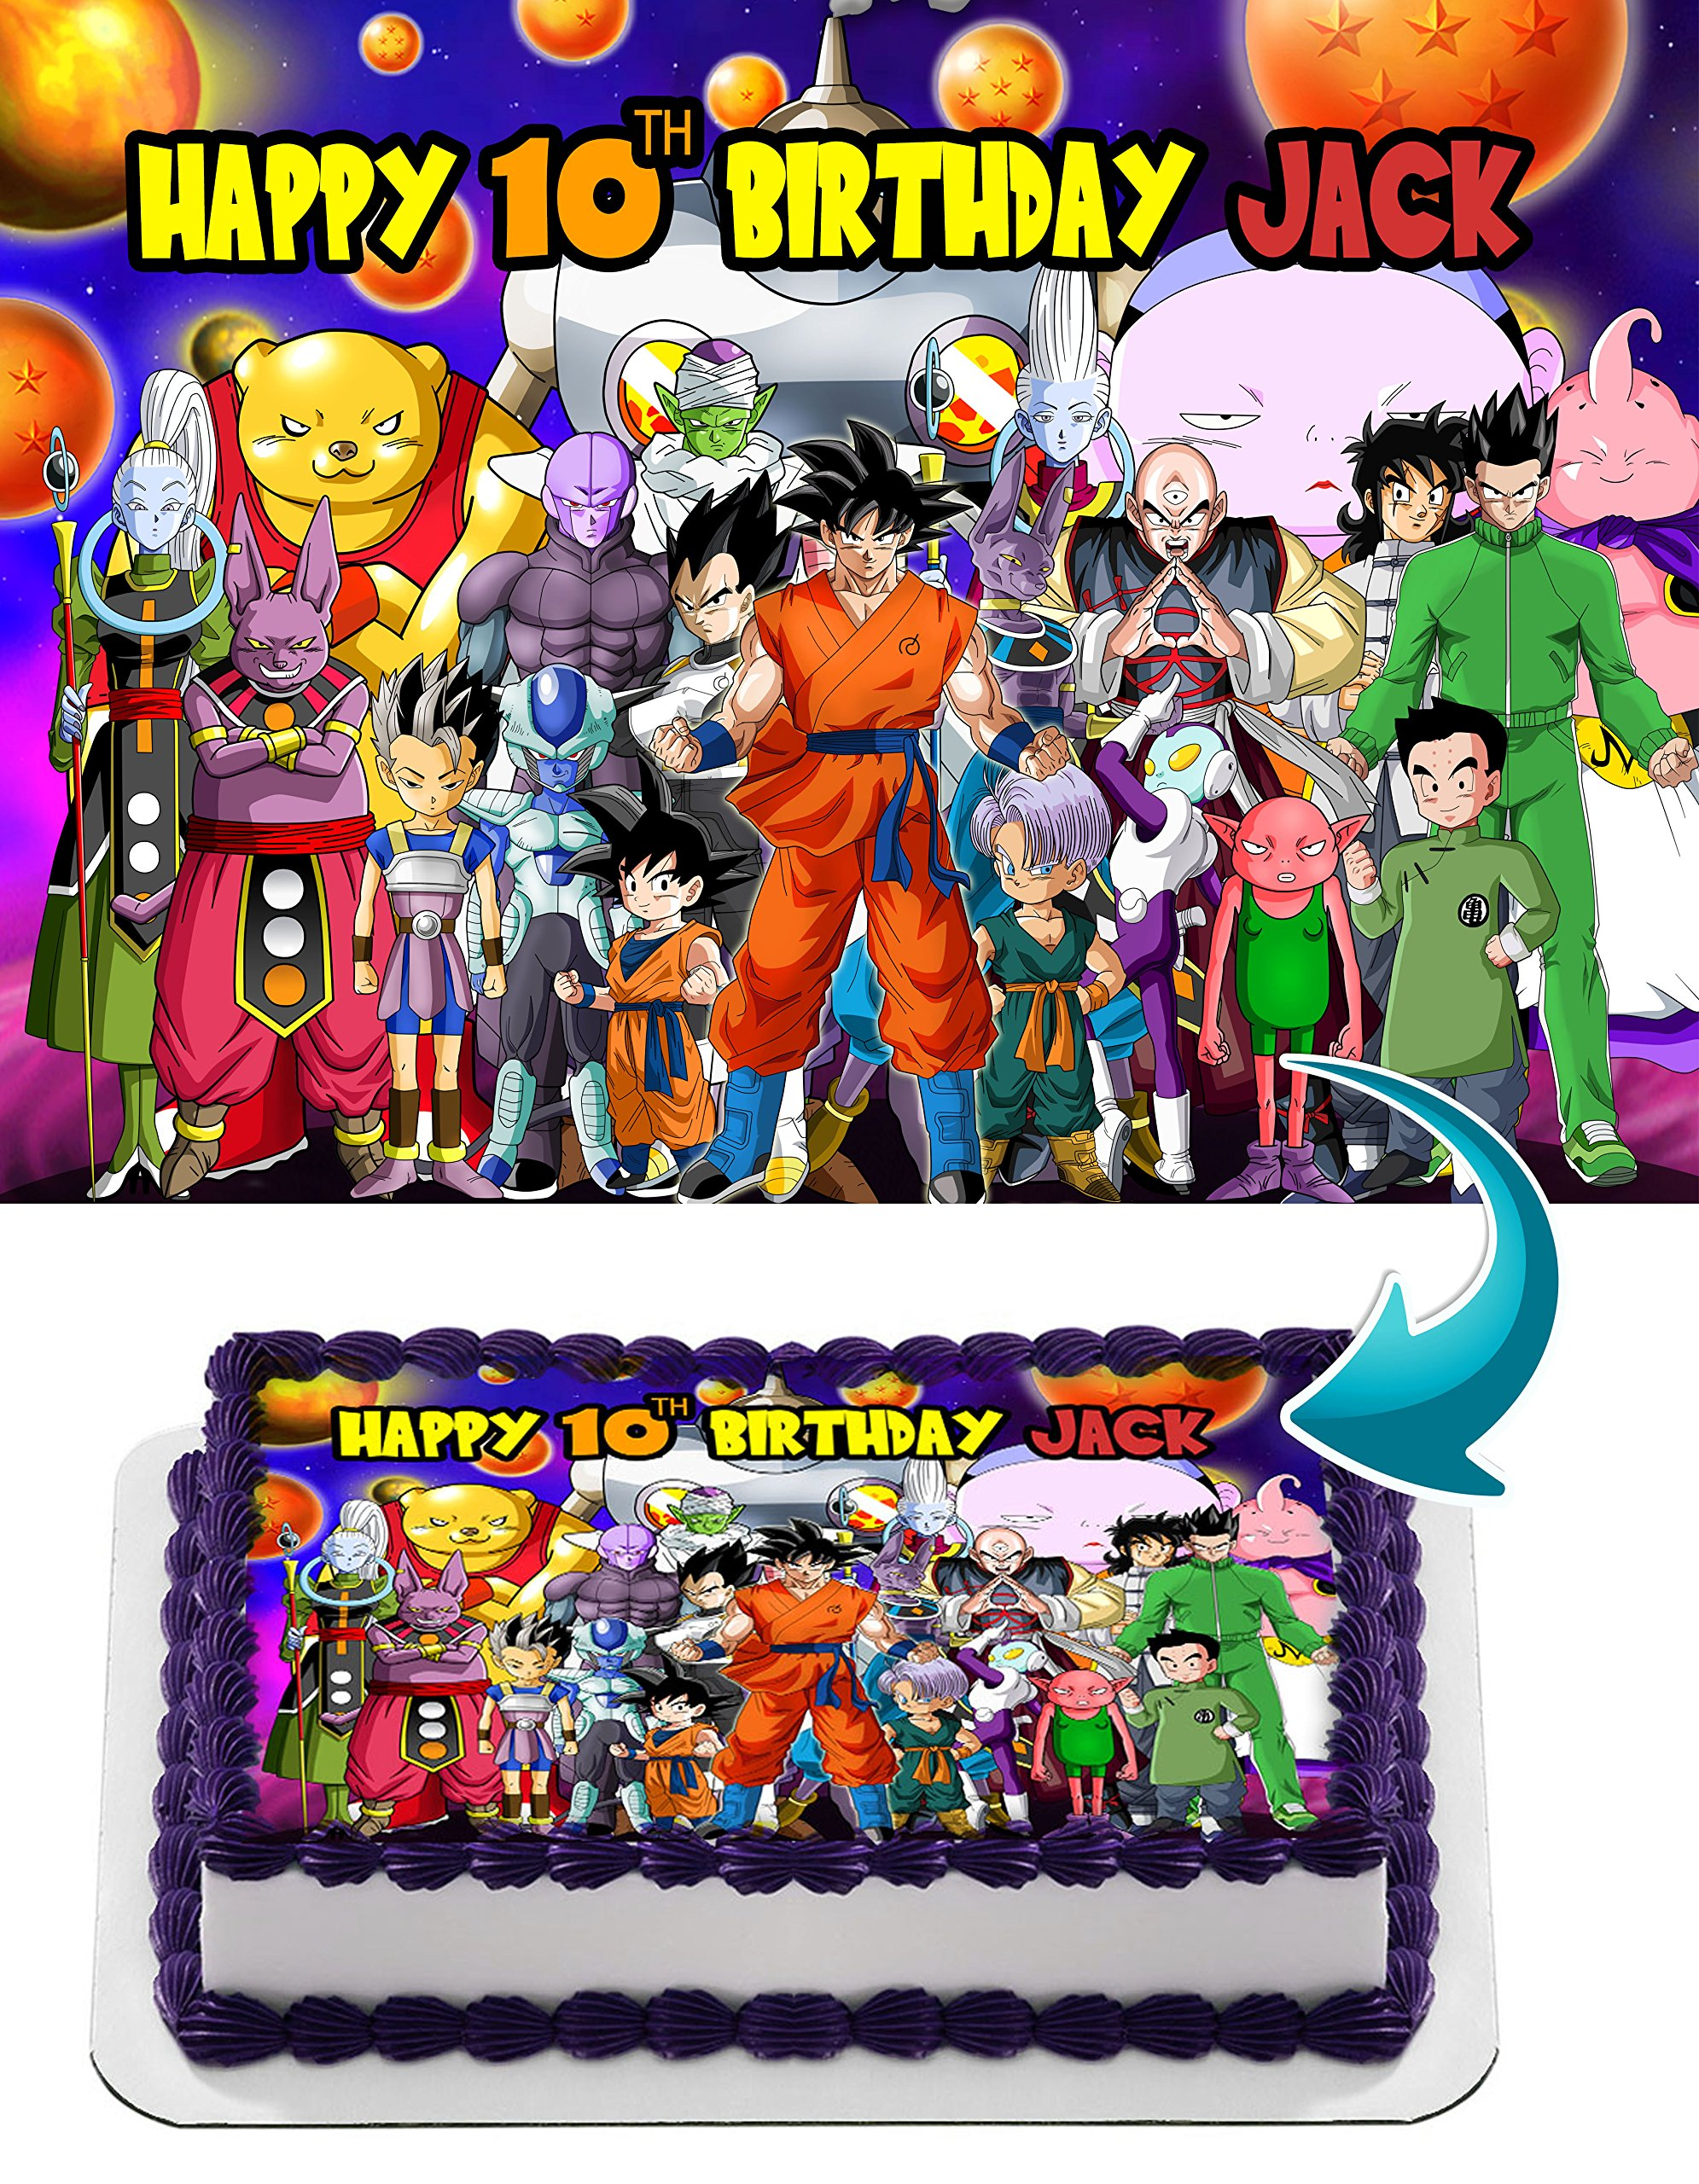 Dragon Ball Super, Goku, Vegeta, Gohan, Anime, Dragon ball Z Personalized Cake Toppers Icing Sugar Paper A4 Sheet Edible Frosting Photo Birthday Cake Topper 1/4 ~ Best Quality!